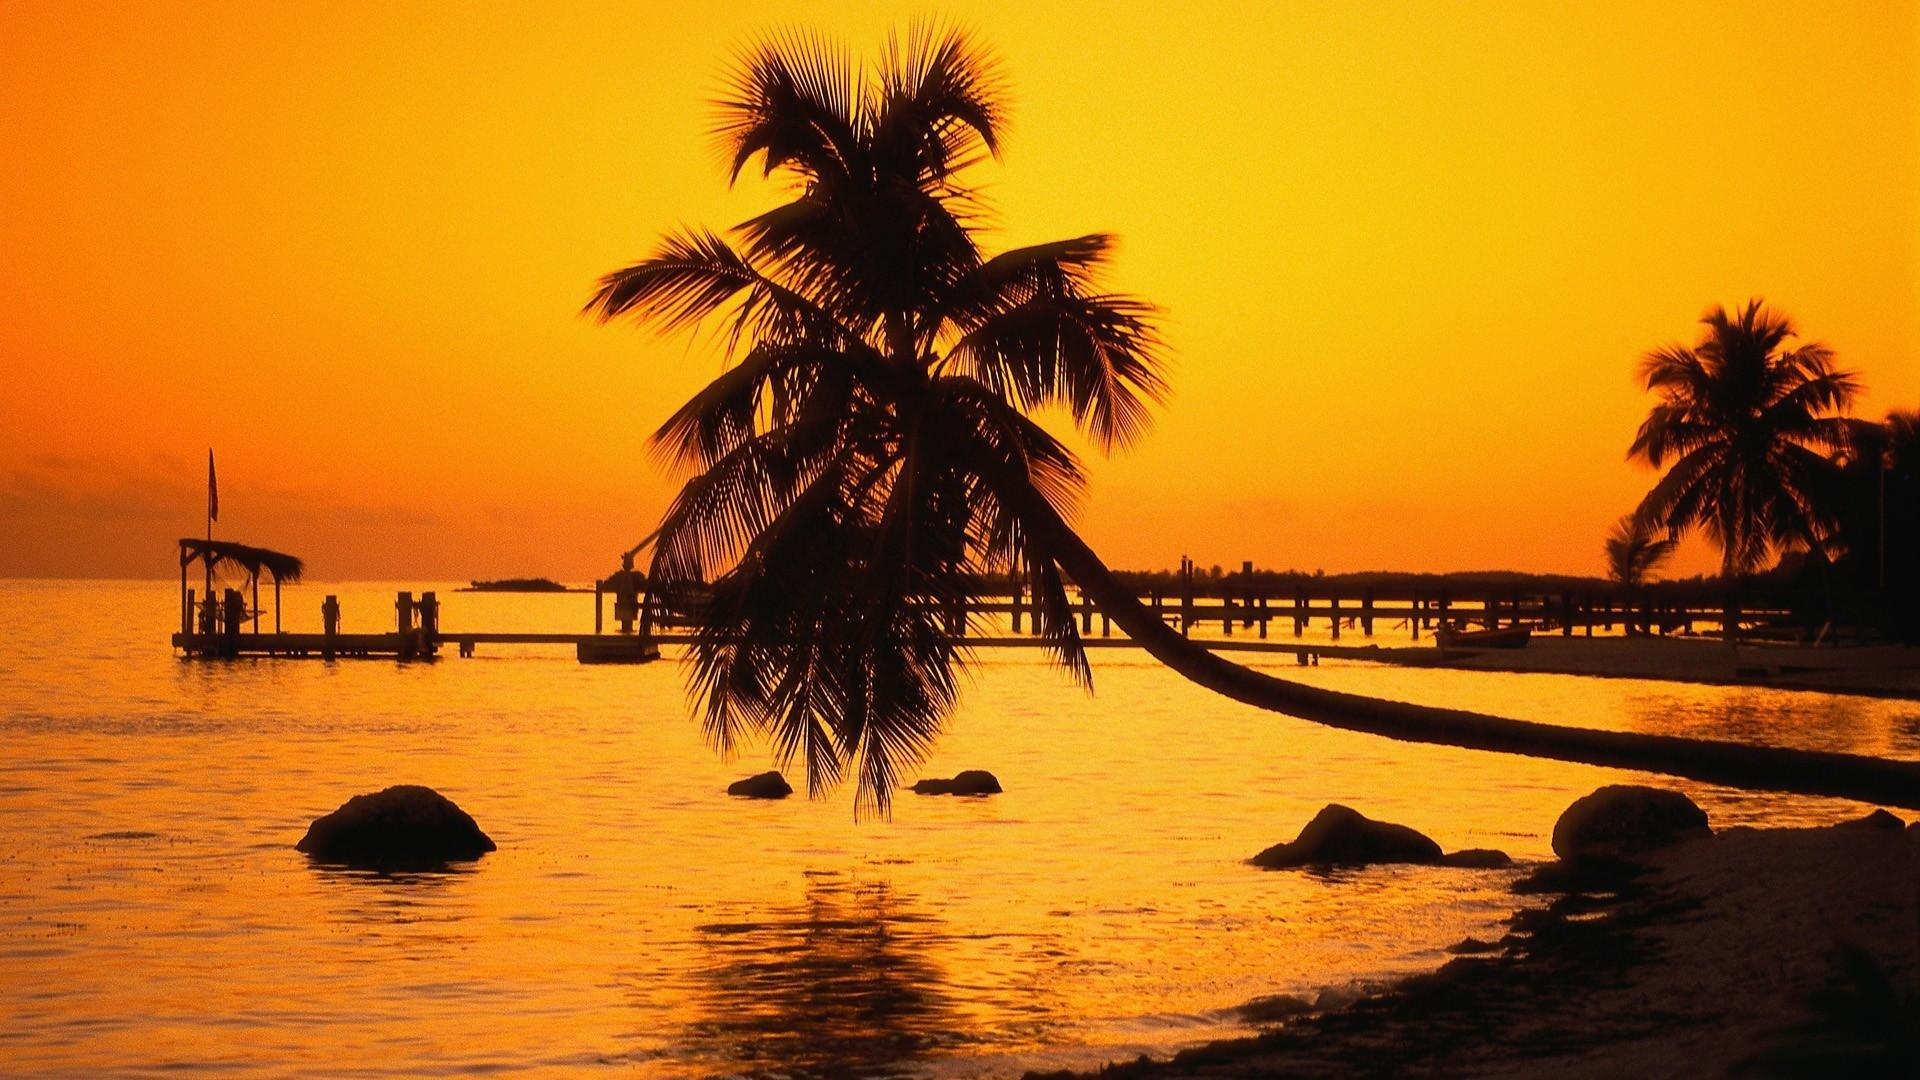 Florida keys nature silhouettes sunset wallpapers